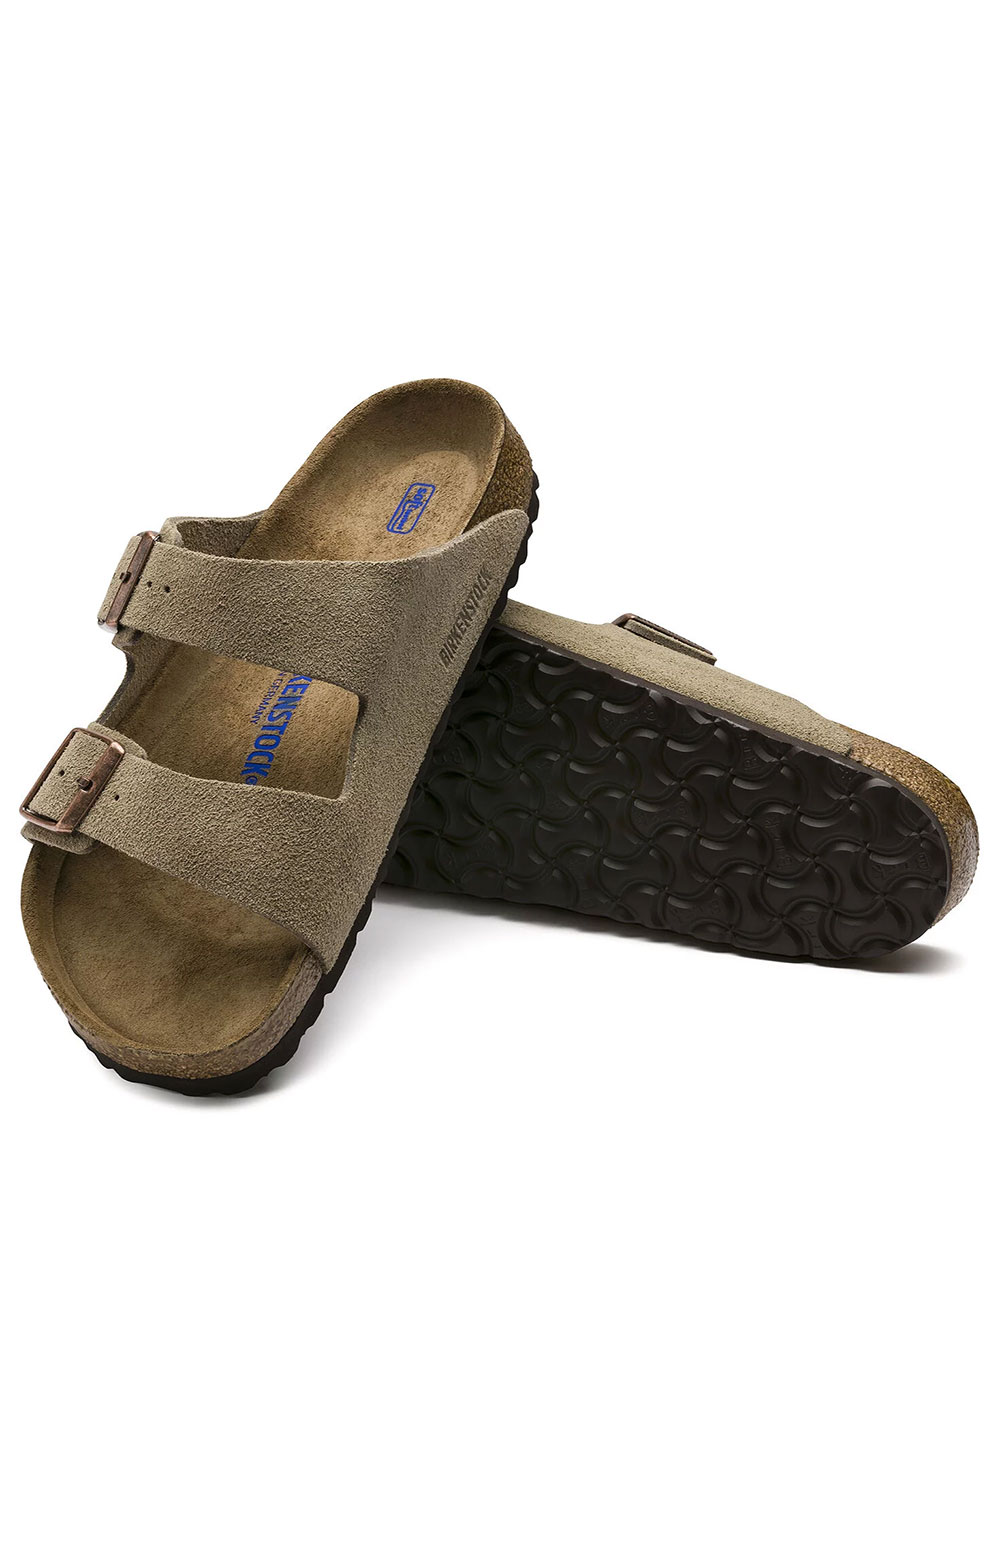 (0951303) Arizona Soft Foodbed Sandals - Taupe 3